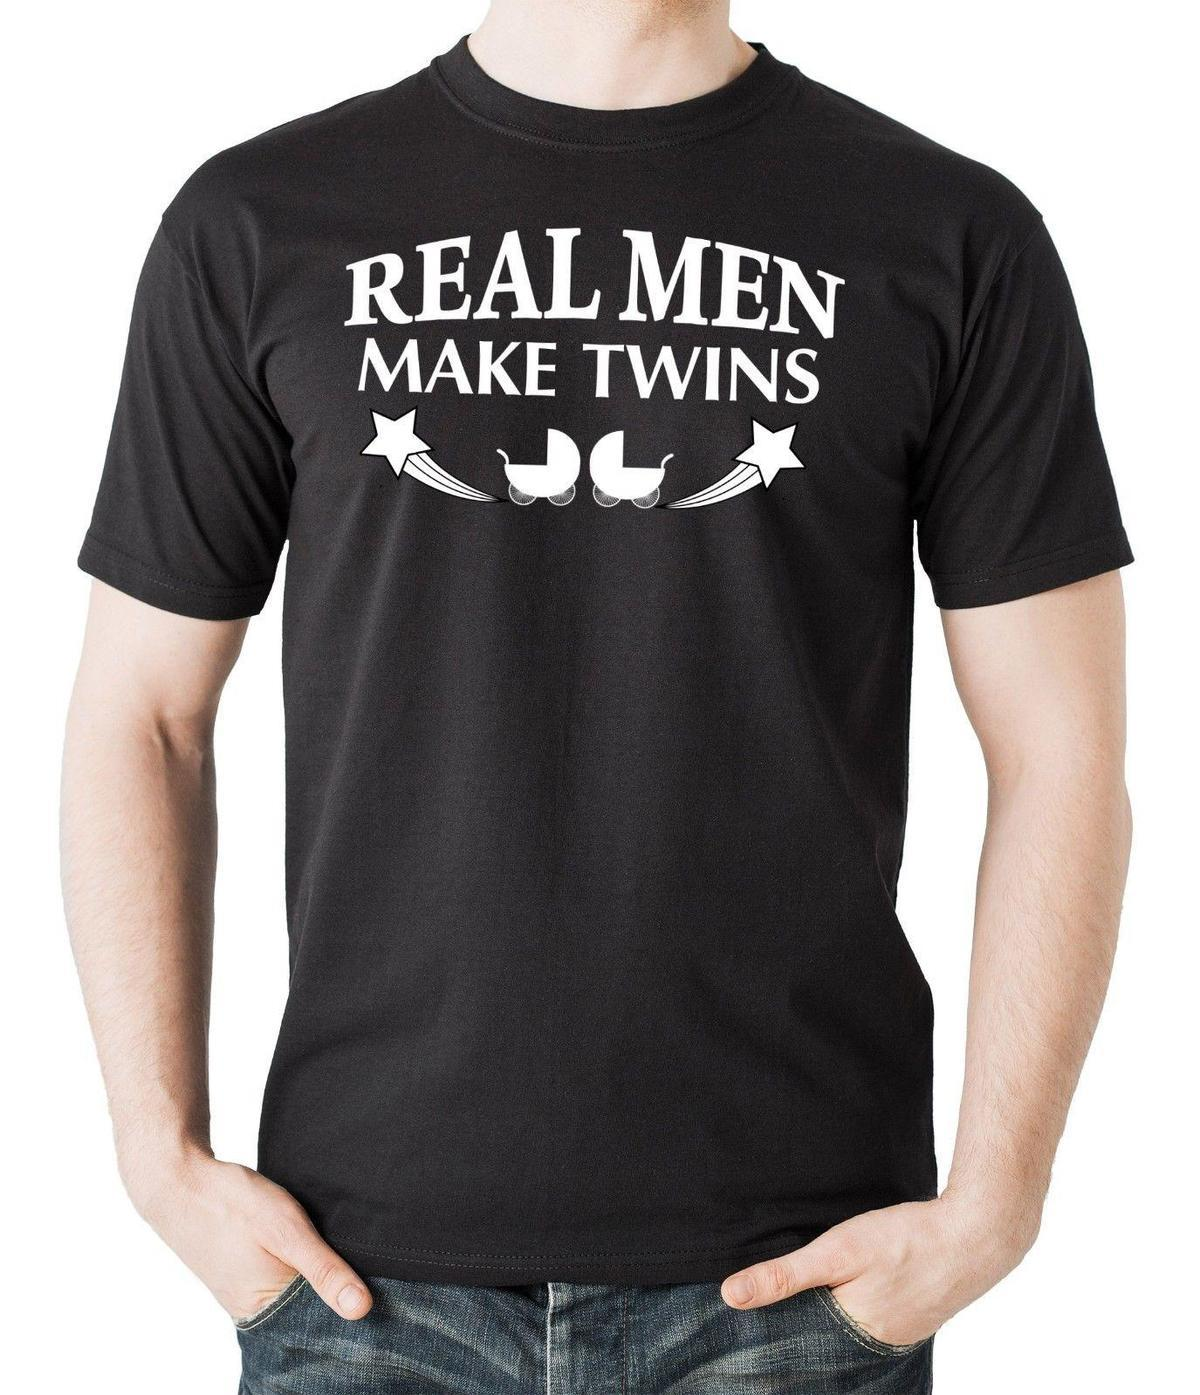 6b7e2e17 Real Men Make Twins T Shirt Funny Gift For New Father Dad Maternity Father'S  Day Best T Shirt Sites T Shirt Shopping From Linnan00002, $14.67| DHgate.Com